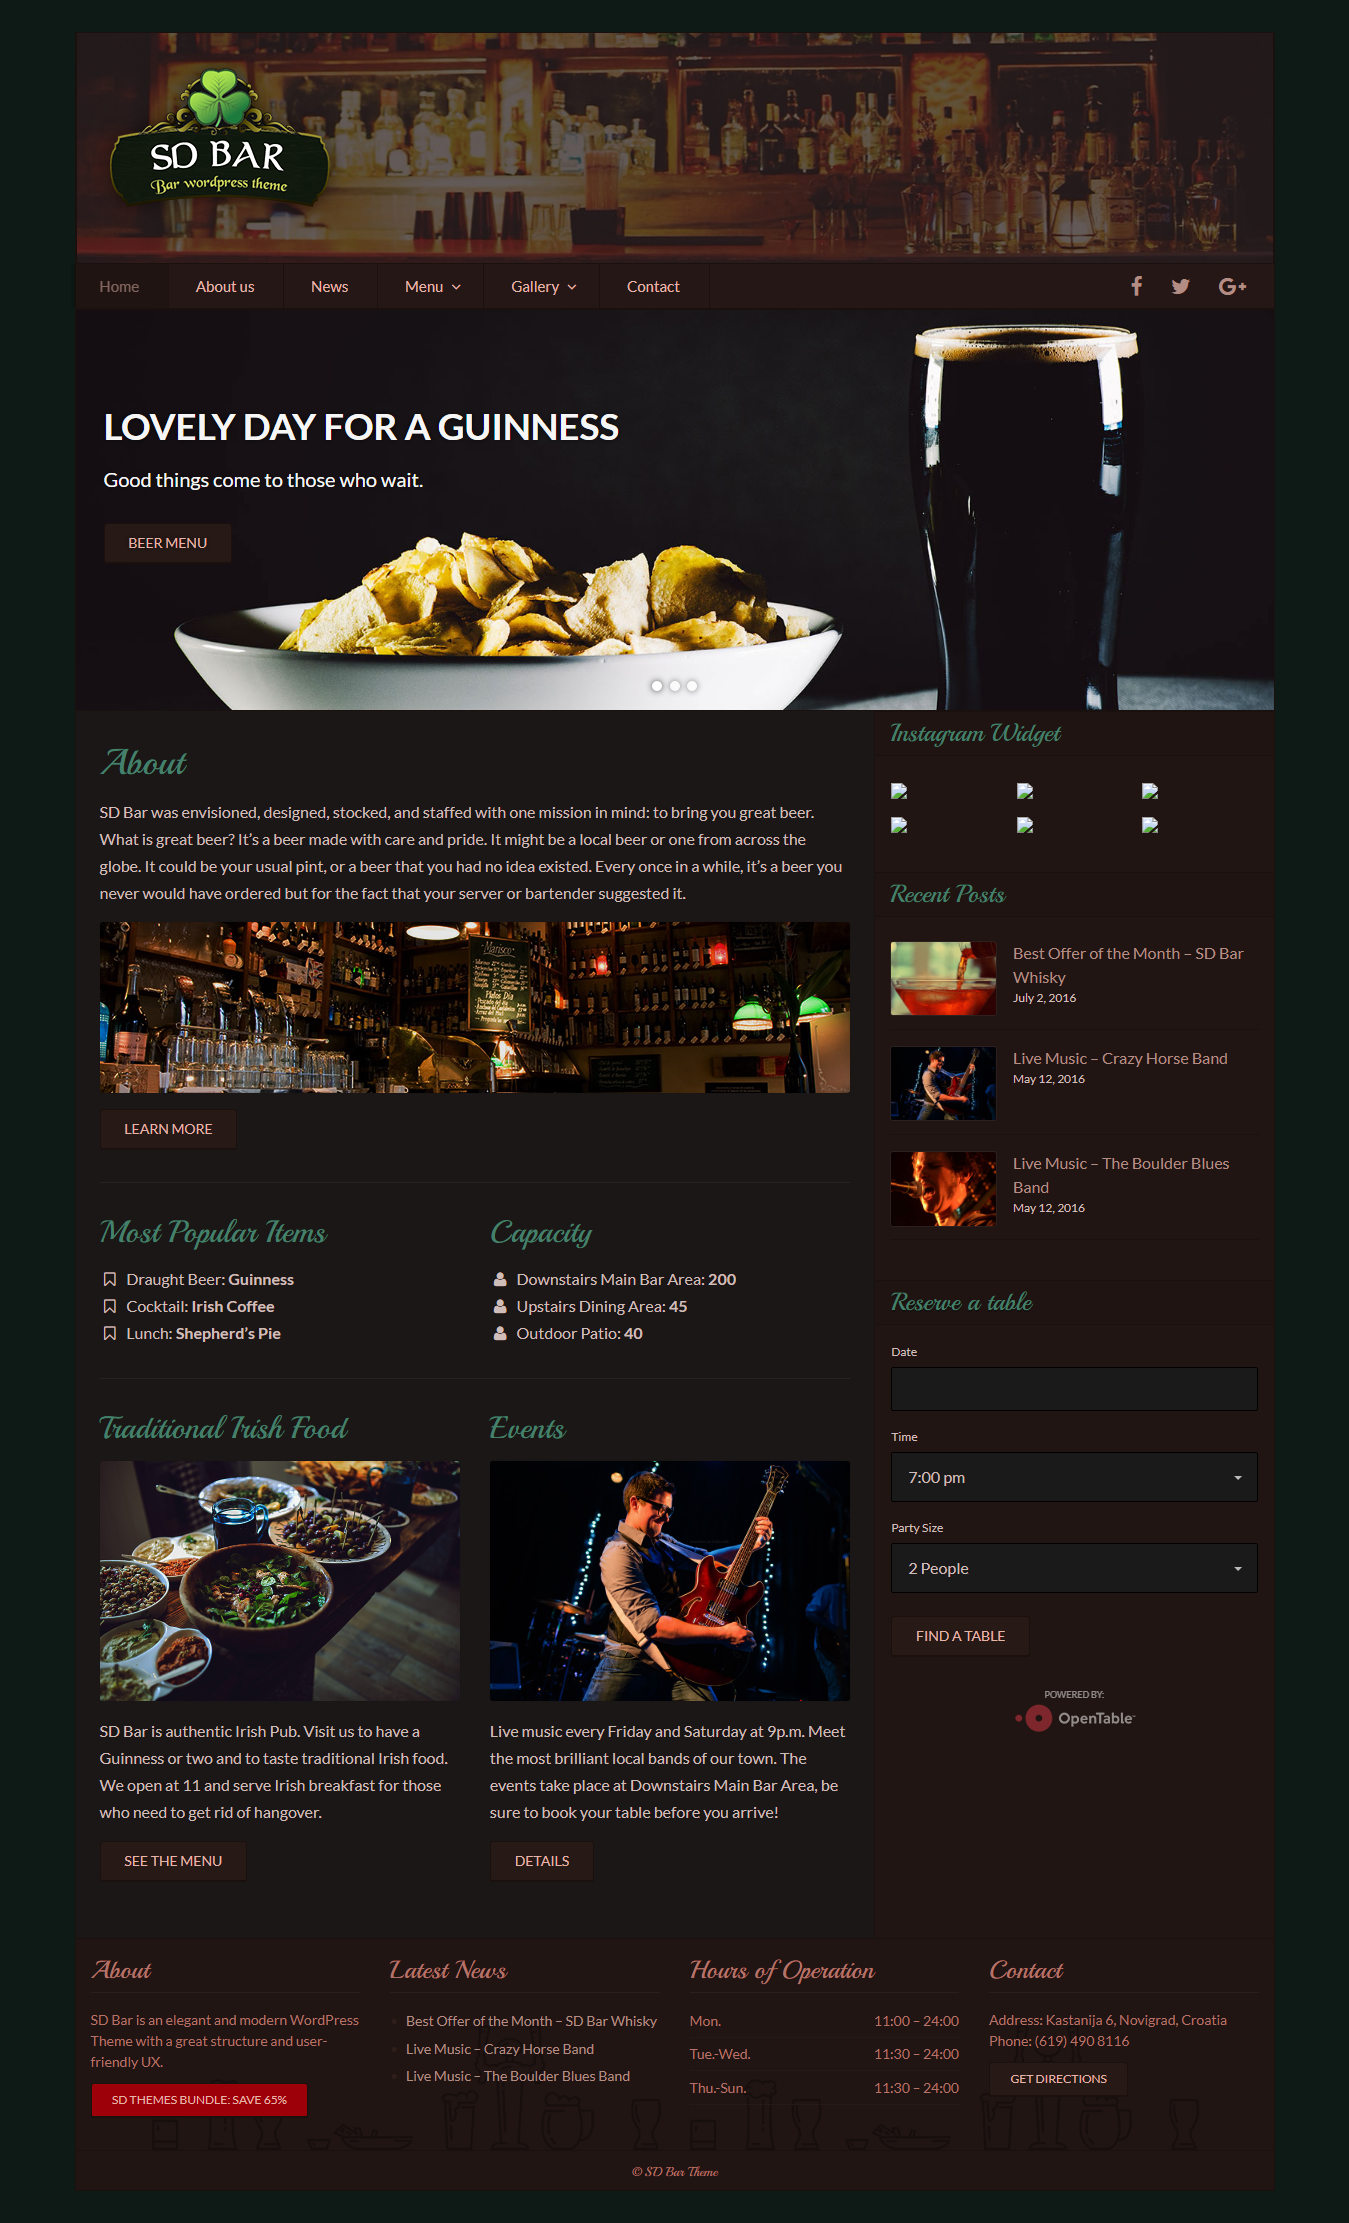 sd bar best premium bar pub wordpress theme - 10+ Best Premium Bar and Pub WordPress Themes